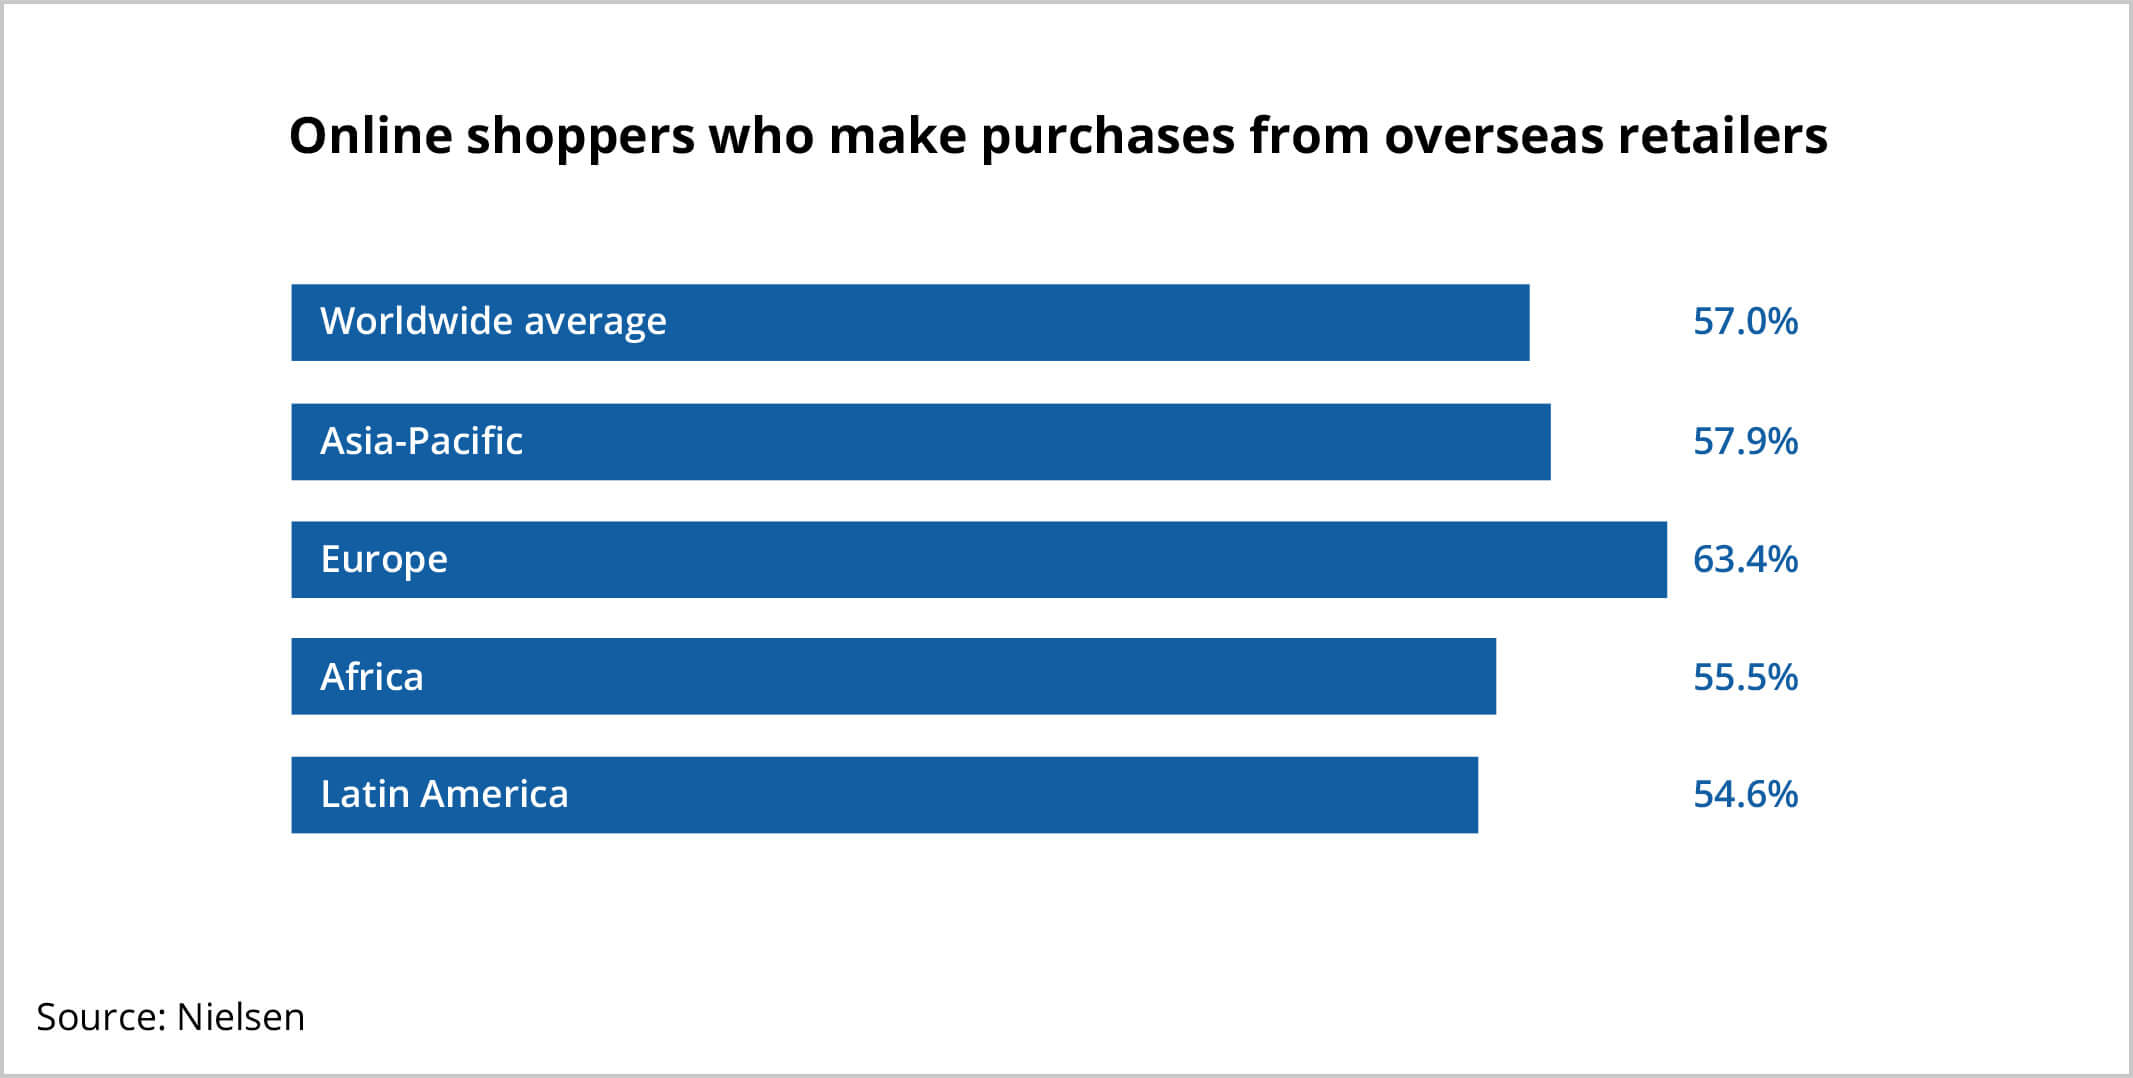 ecommerce online shoppers purchasing overseas